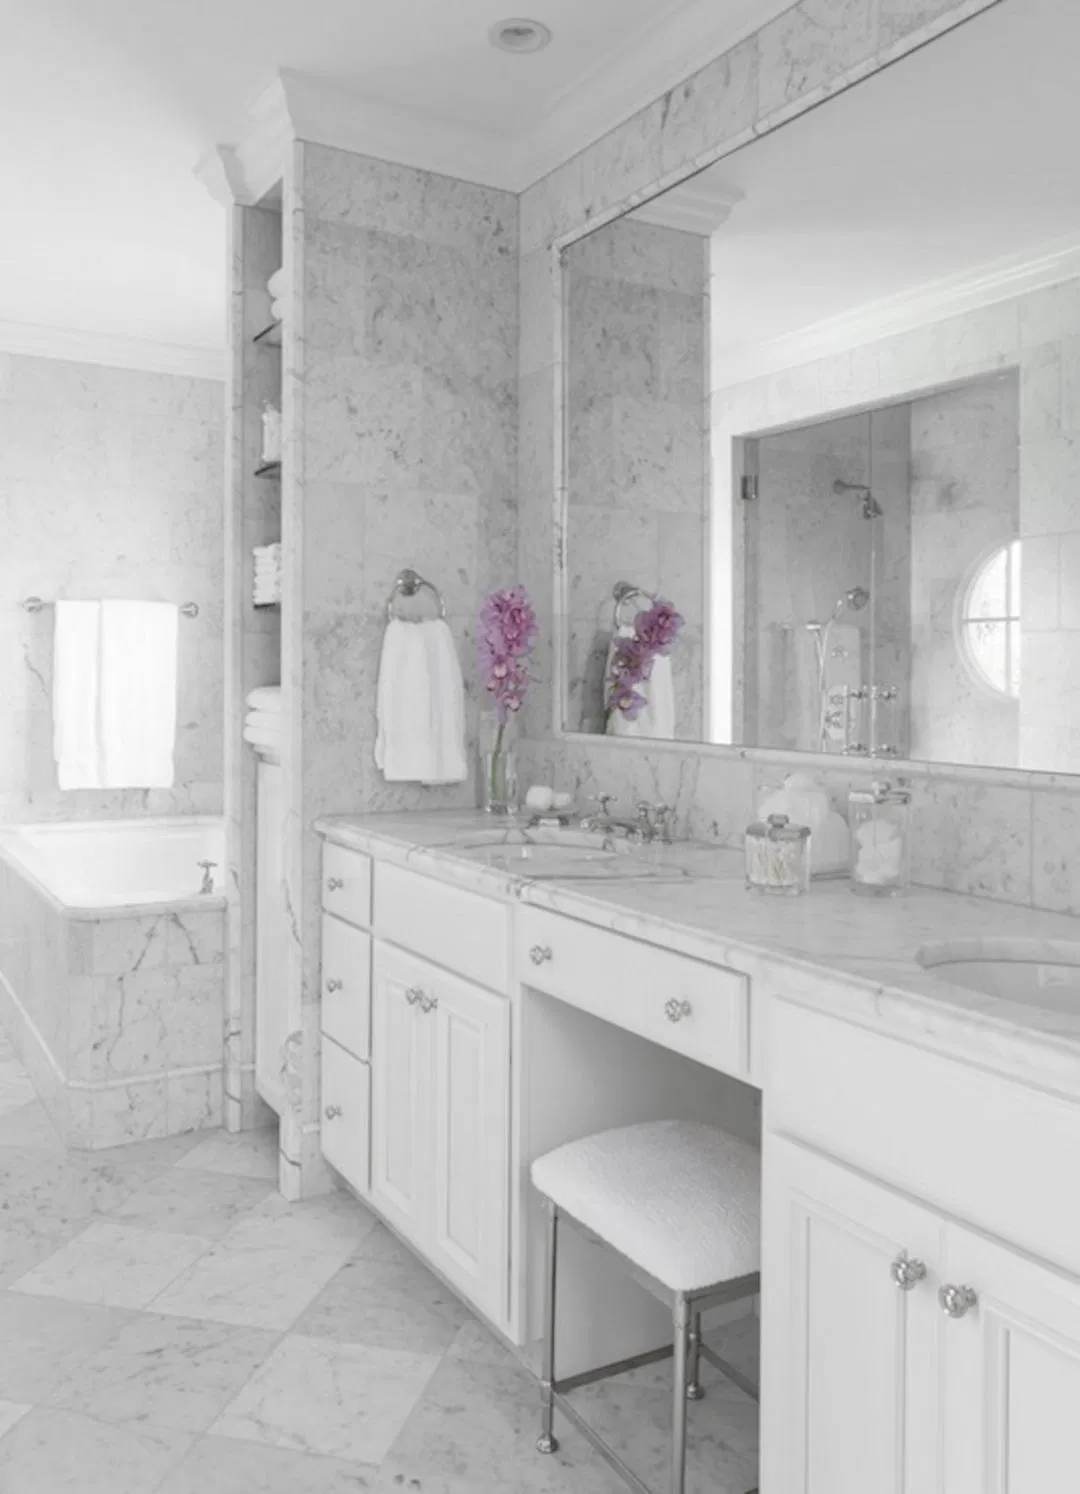 modern bathroom with marble wall finishes, marble tile floors, white cabinet vanity and small area for seating in front of mirror